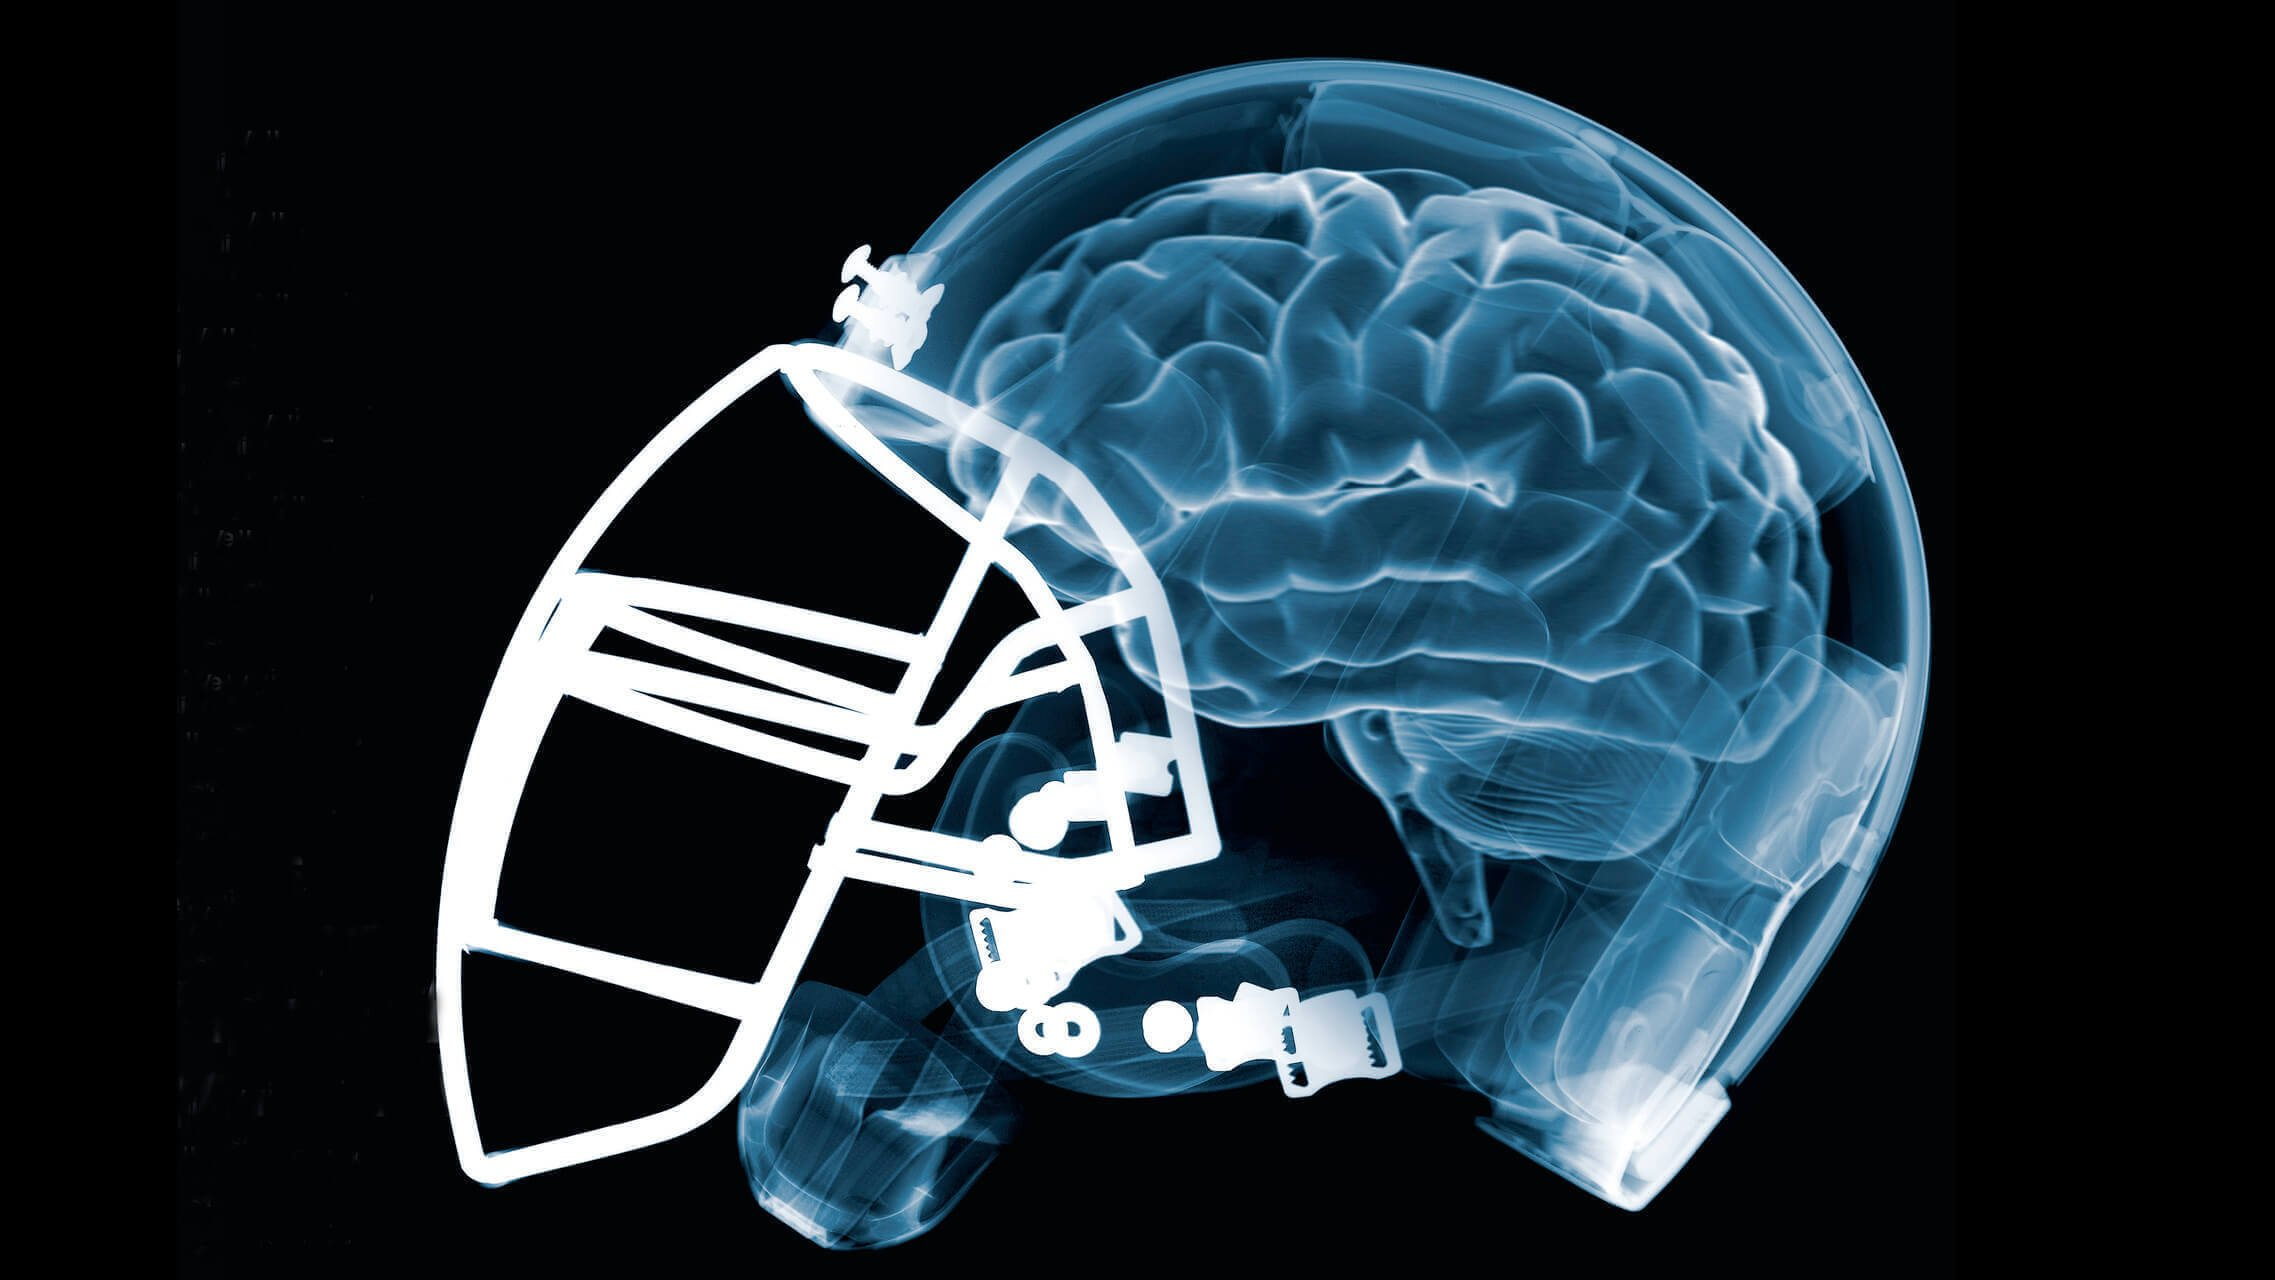 NFL backs 3D Printed Helmet Material to Reduce Brain Injuries | All3DP